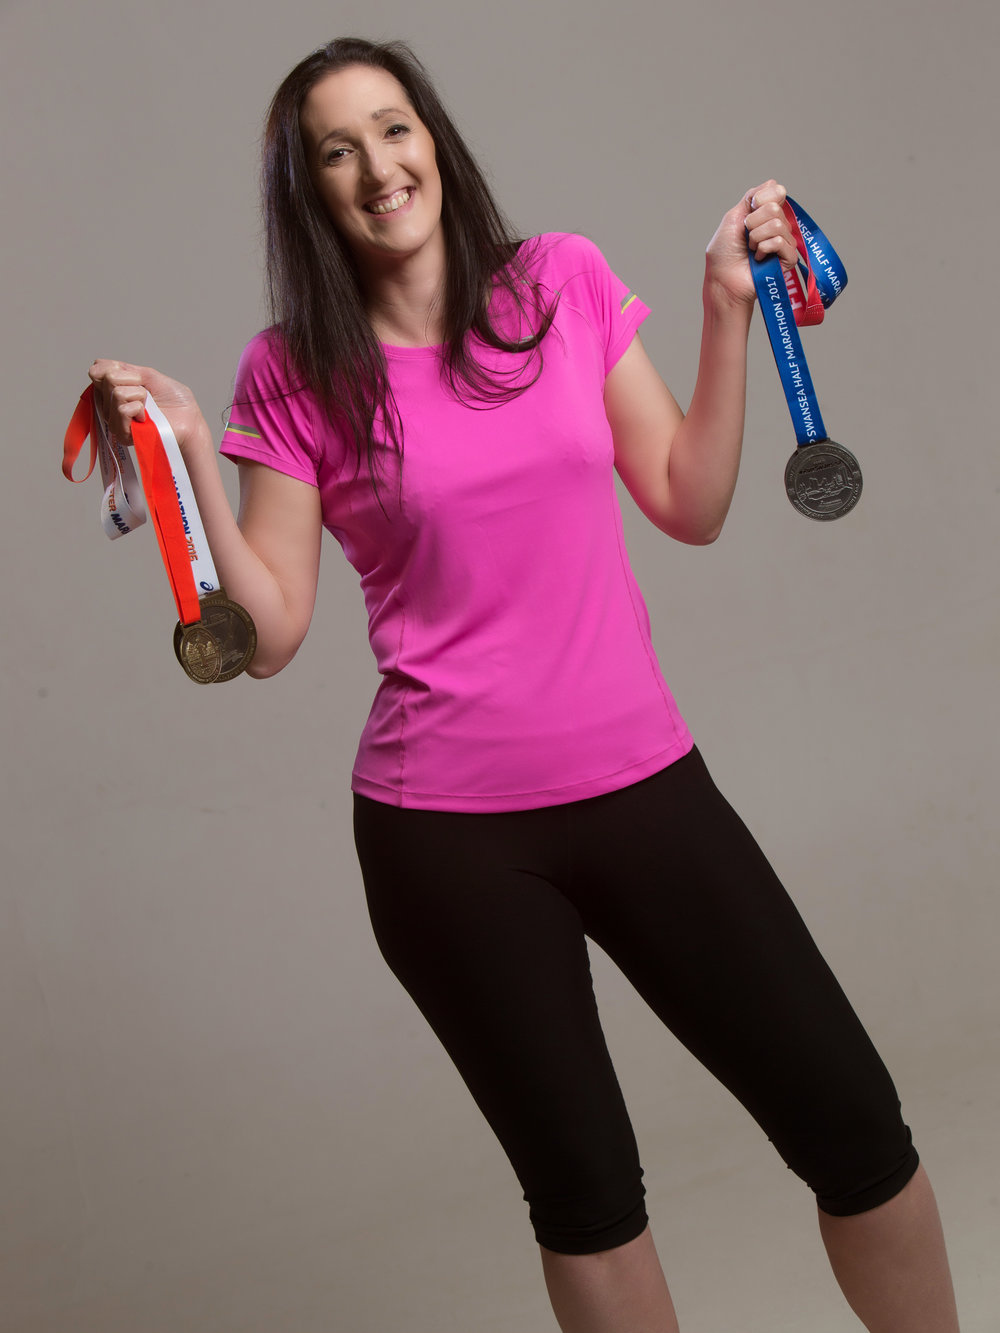 Me and my favourite medals.